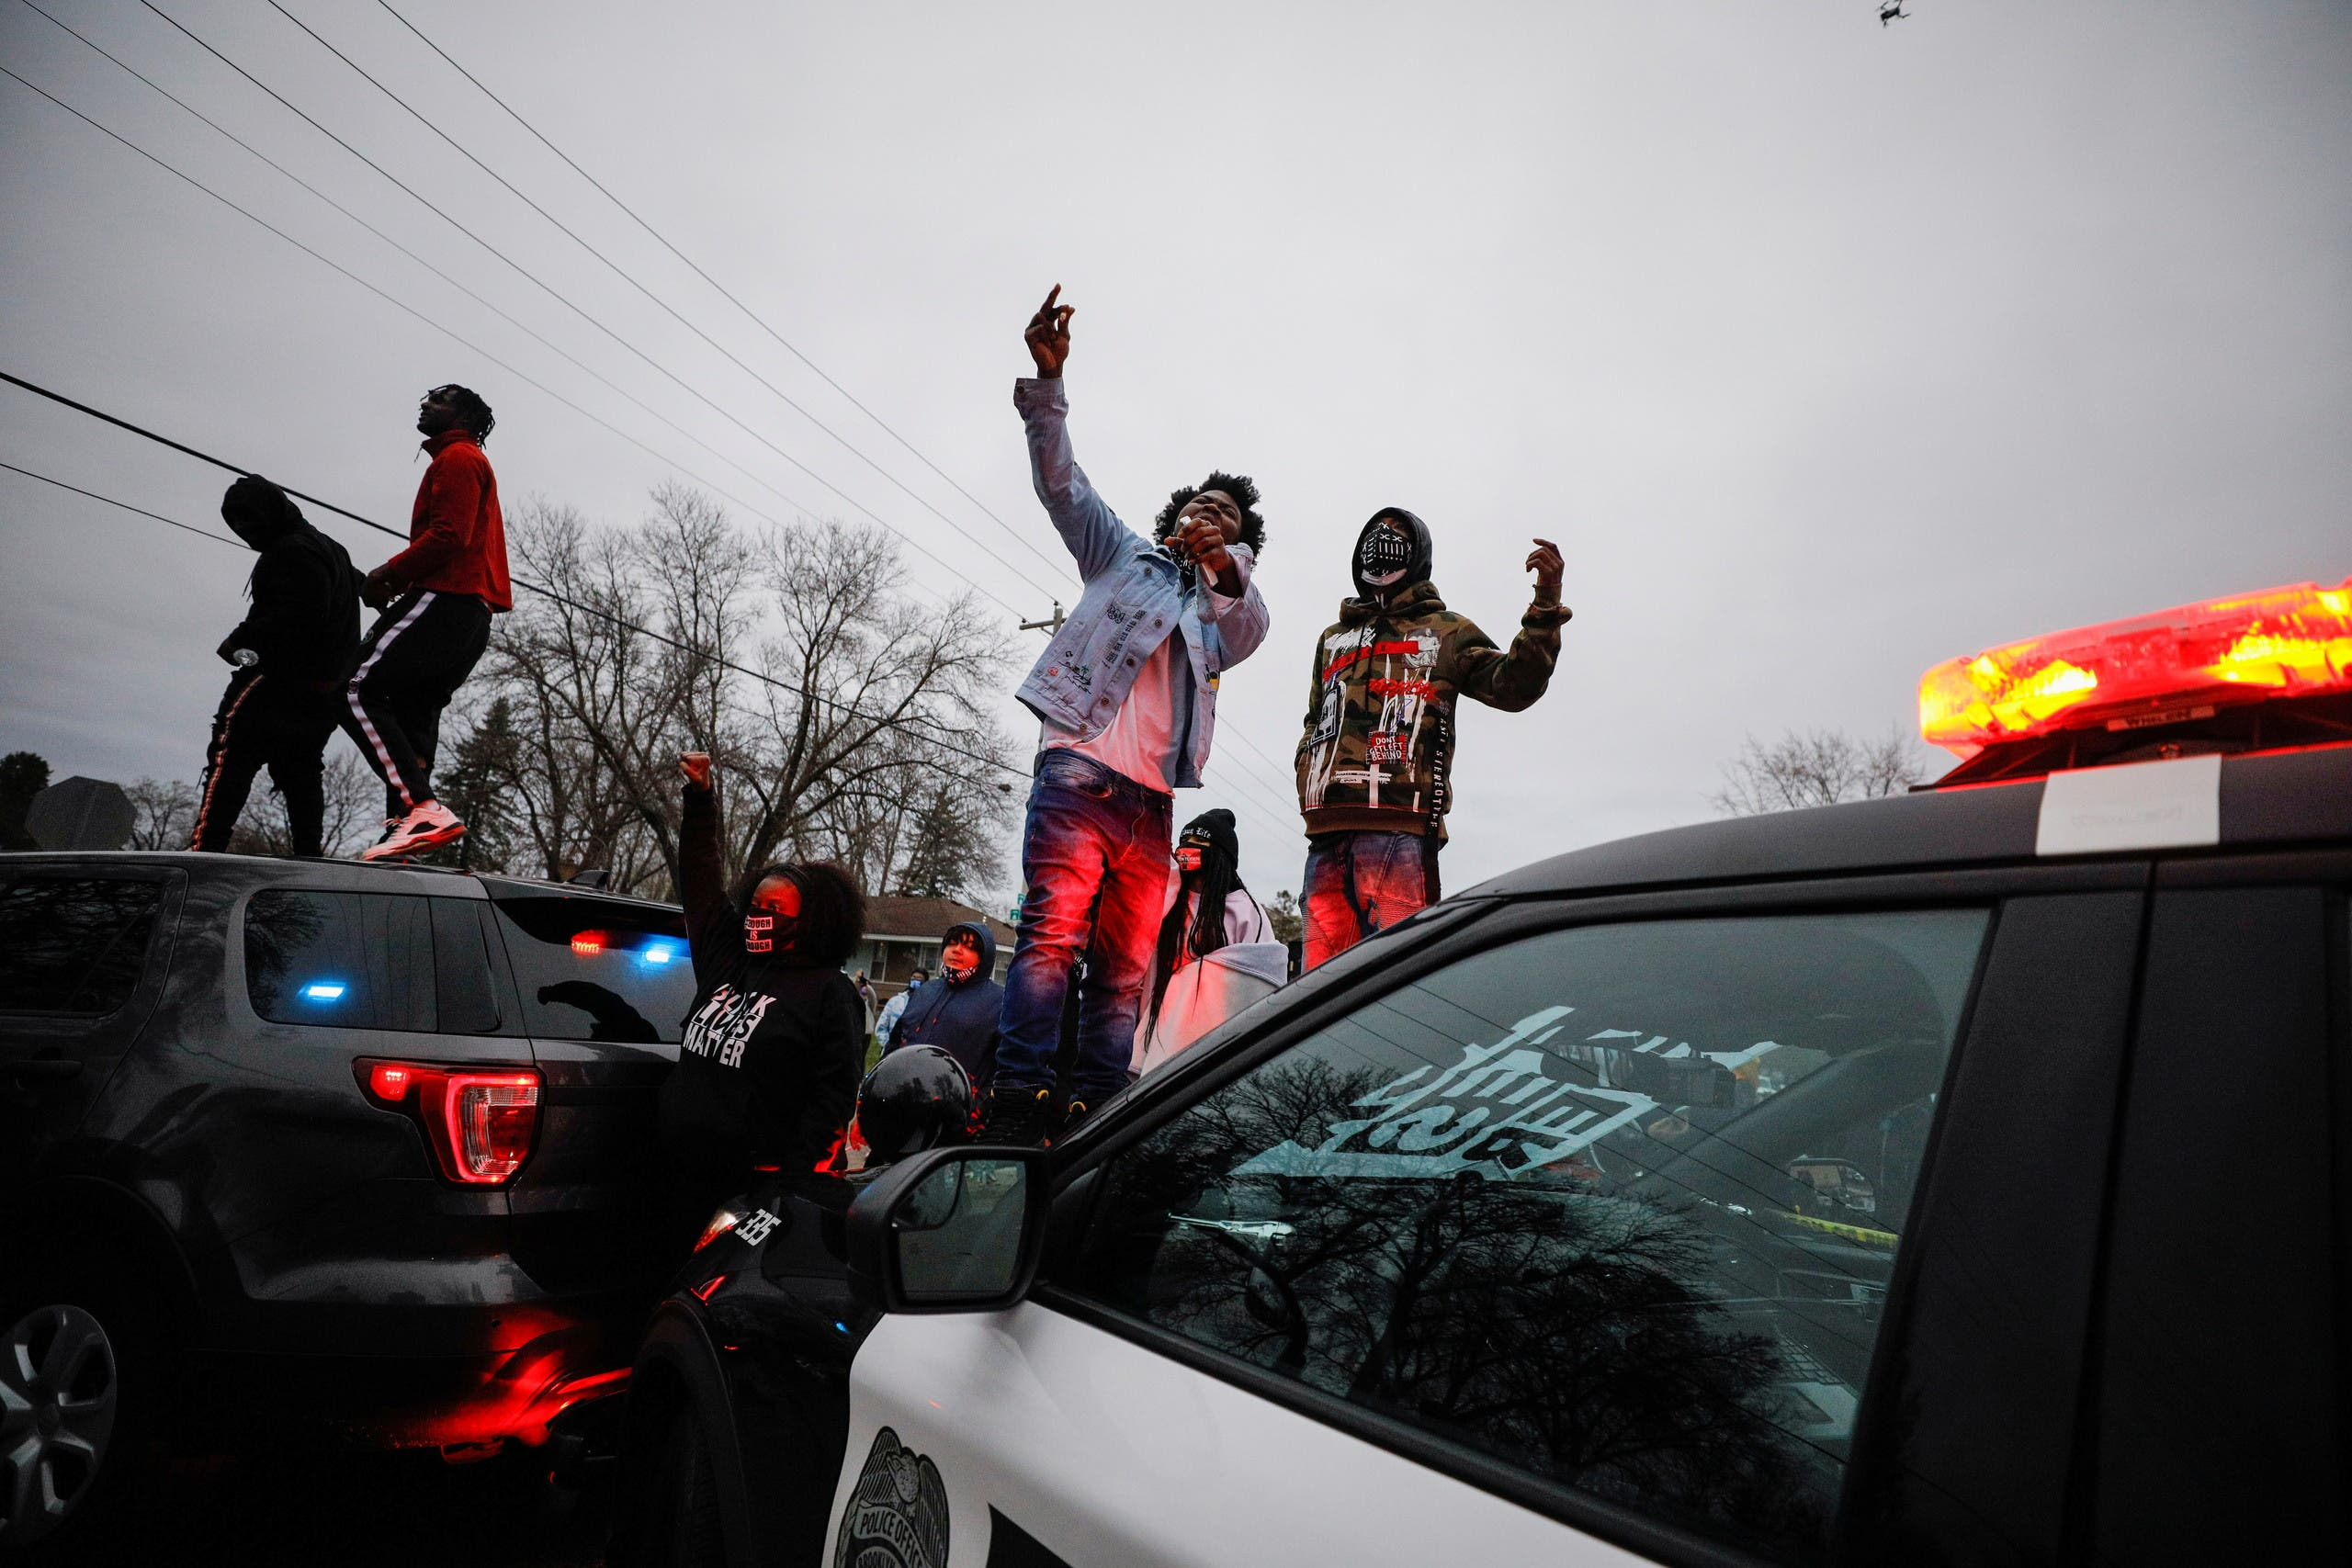 Demonstrators stand on a police vehicle during a protest after police allegedly shot and killed a man, who local media report is identified by the victim's mother as Daunte Wright, in Brooklyn Center, Minnesota, US, April 11, 2021. (Reuters)